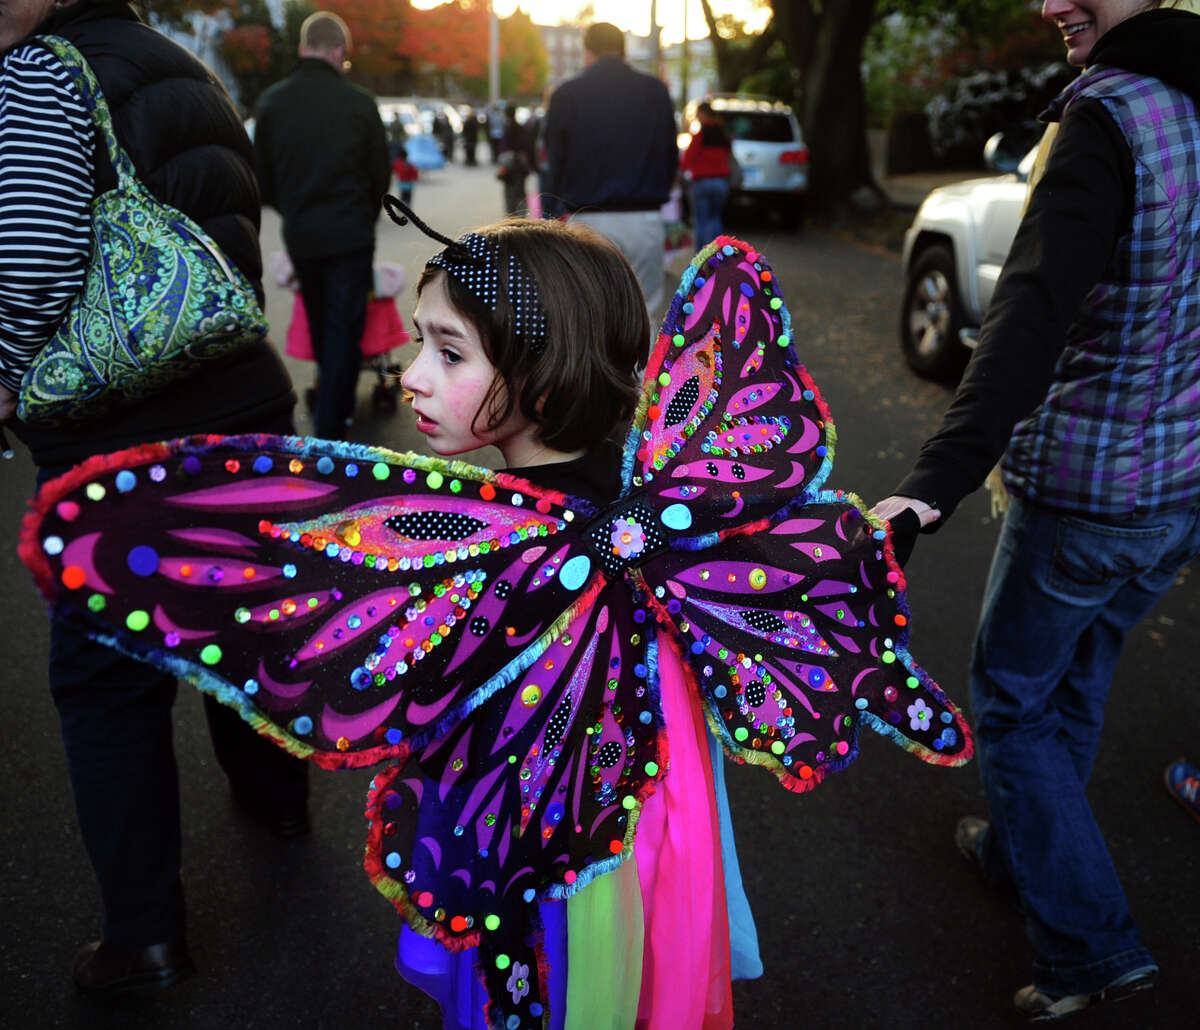 Rainbow butterfly Maggie Lupa, 6, of Bridgeport, floats along Tuesday, Oct. 29, 2013 during the 5th Annual Black Rock Halloween Parade & Block Party beginning at Ellsworth Park and ending at the Black Rock Branch Library. The Black Rock neighborhood ZIP code, 06605, came in 12th on a list of top trick-or-treating territories in all of Southwestern Connecticut. Bridgeport's 06606 came in second place to Stamford's 06902.